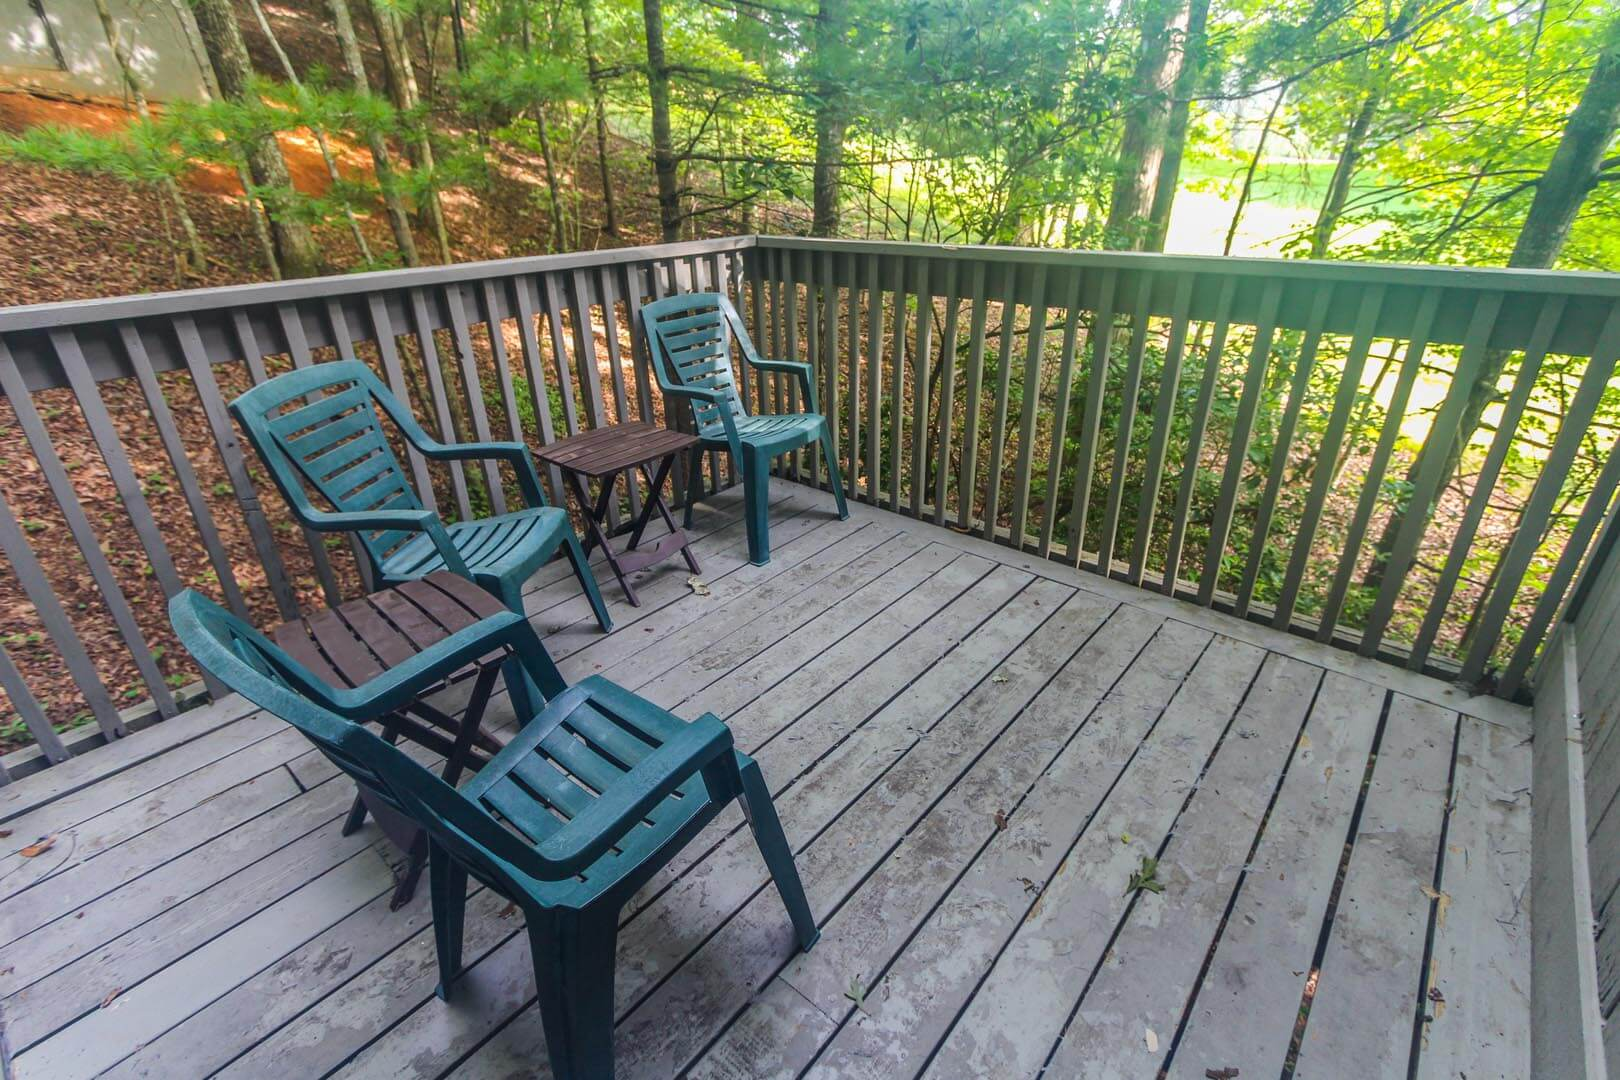 A nature filled balcony view at VRI's Golf Club Villas in Marble Hill, Georgia.